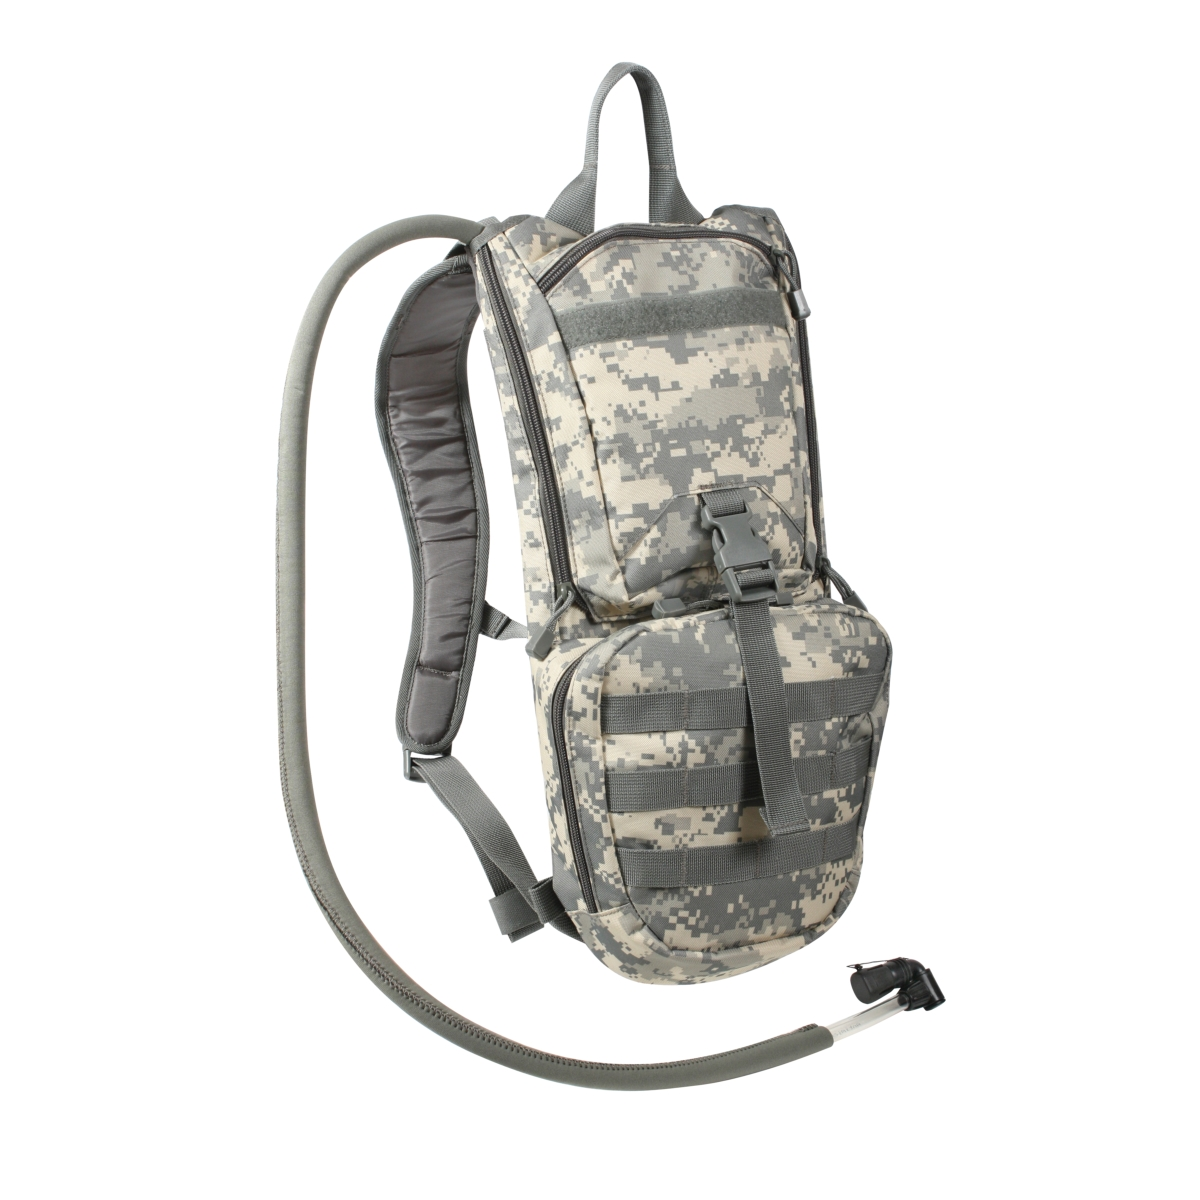 Rothco Rapid Trek MOLLE 3 Liter Hydration Packs